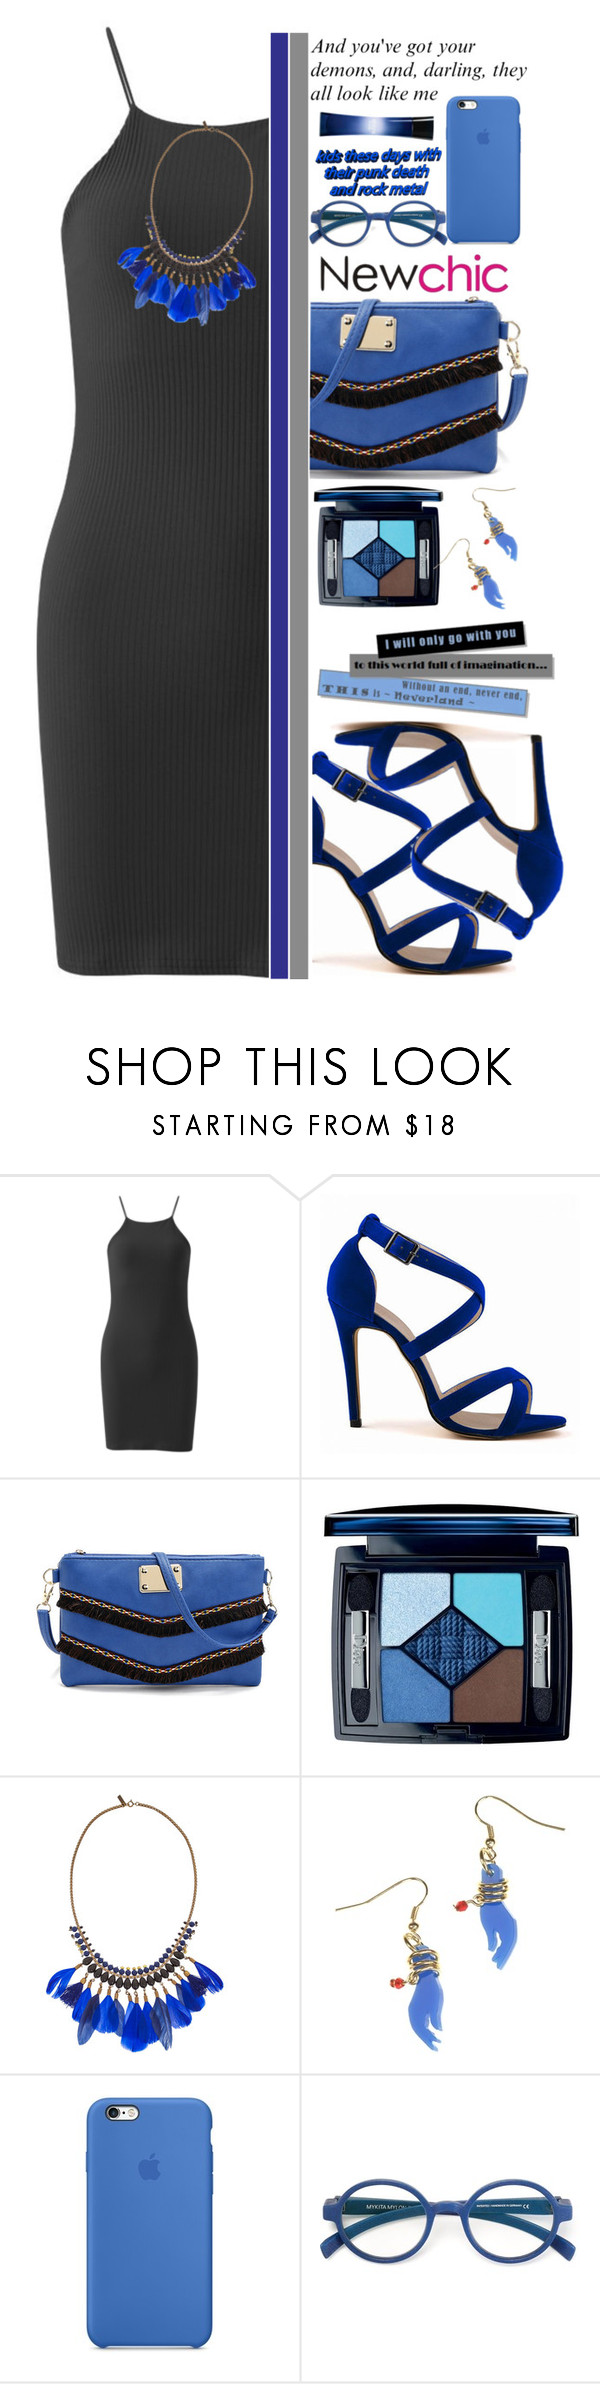 """""""Newchic (9\10) ♥"""" by av-anul ❤ liked on Polyvore featuring Christian Dior, Isabel Marant, Mykita, Giorgio Armani, RedCarpet, topset, newchic and avanul"""